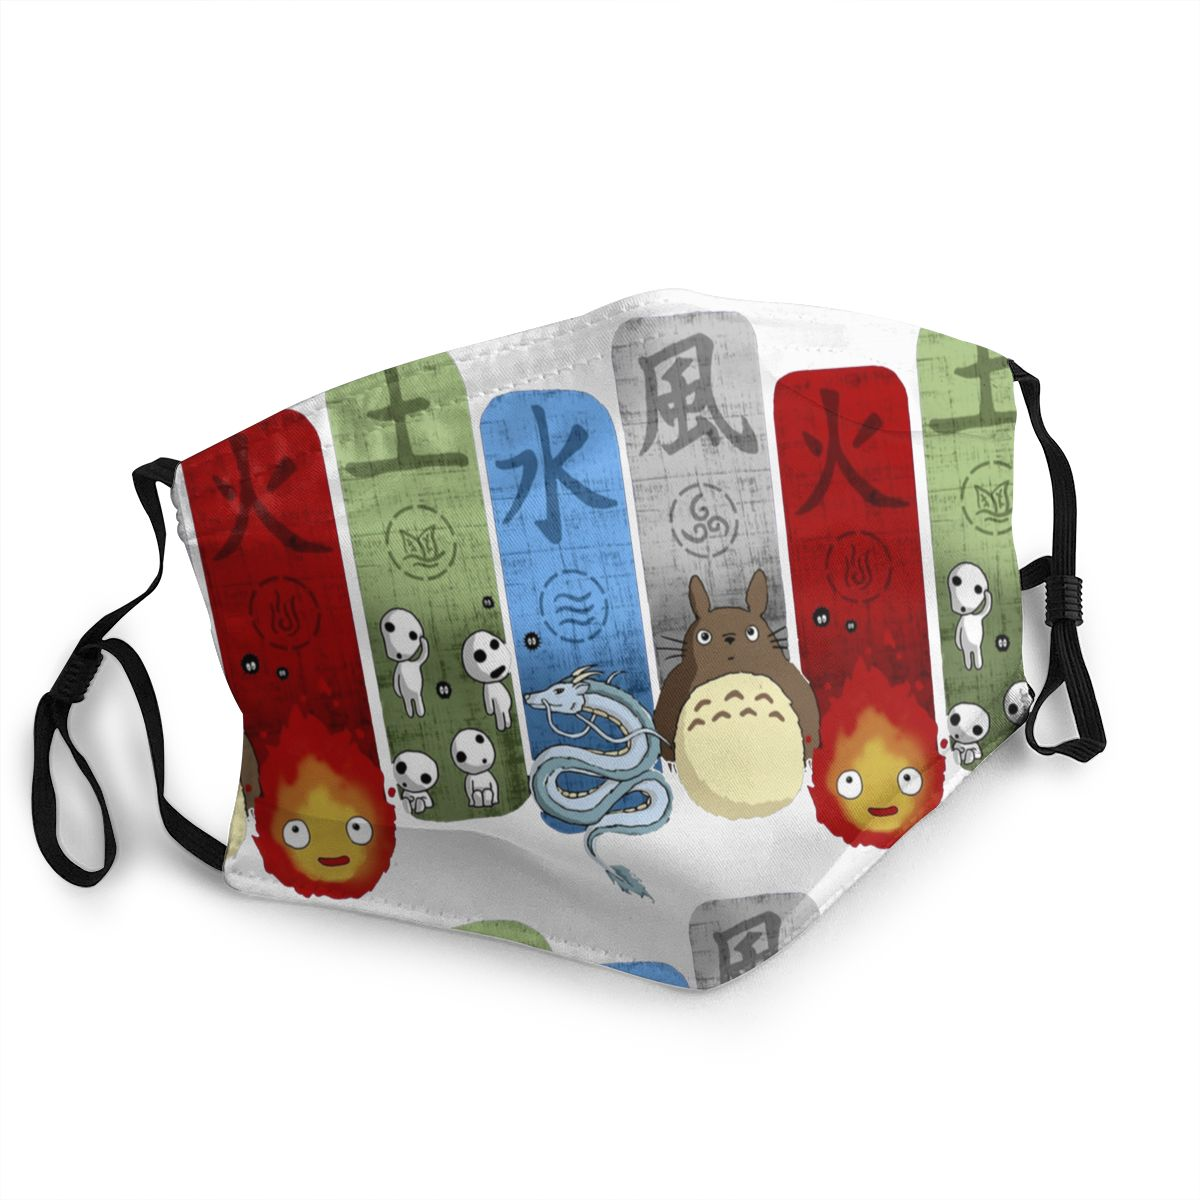 Studio Ghibli Reusable Mouth Face Mask Totoro Anime Anti Bacterial Dust Mask Protection Cover Respirator Mouth Muffle